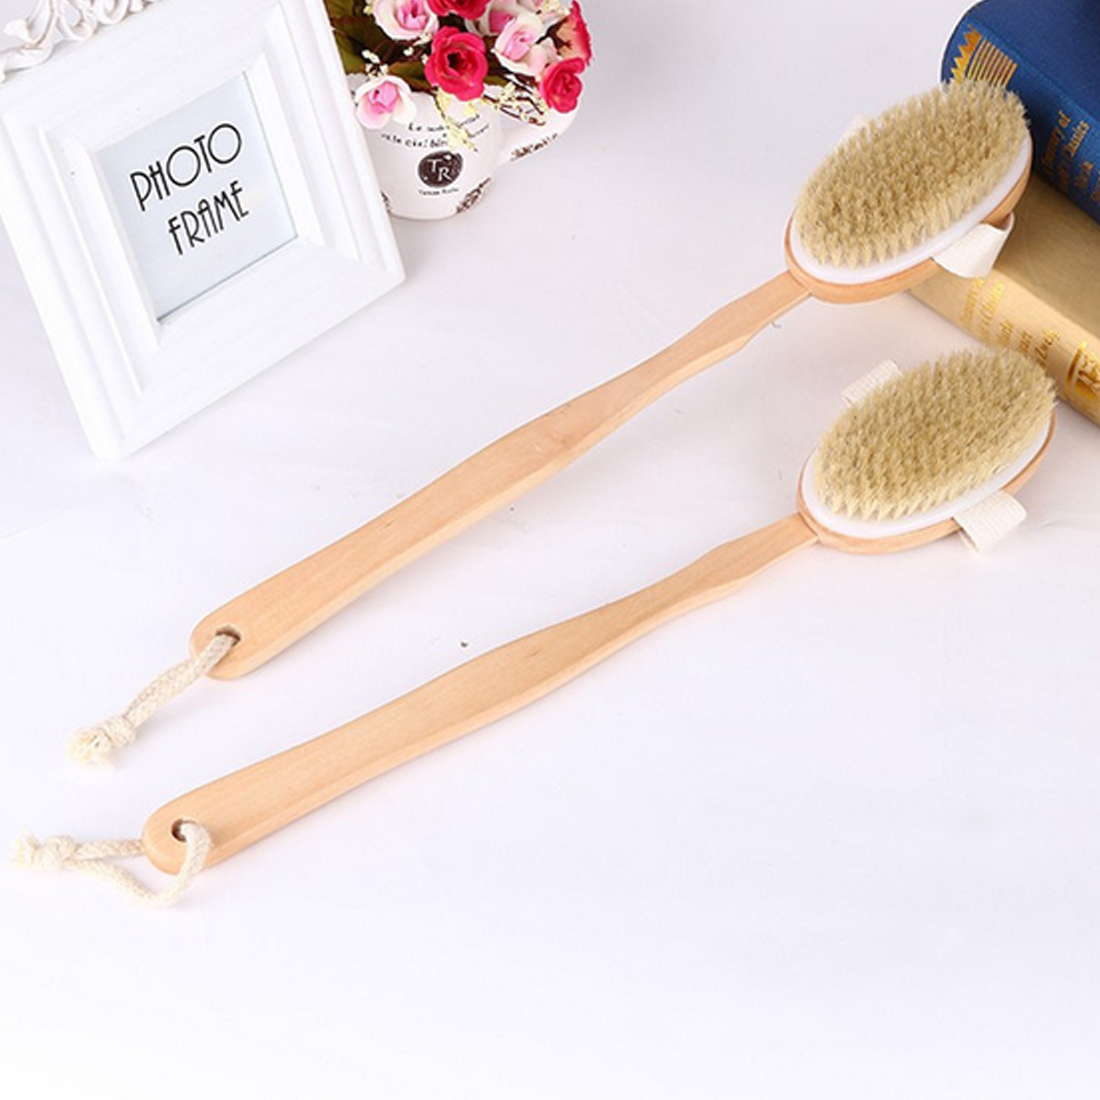 42cm Long Wooden Handle Natural Bristles Scrubber Spa Shower Brush Bath Body Massage Brushes Skin Cleaning for Dry Brush Shower